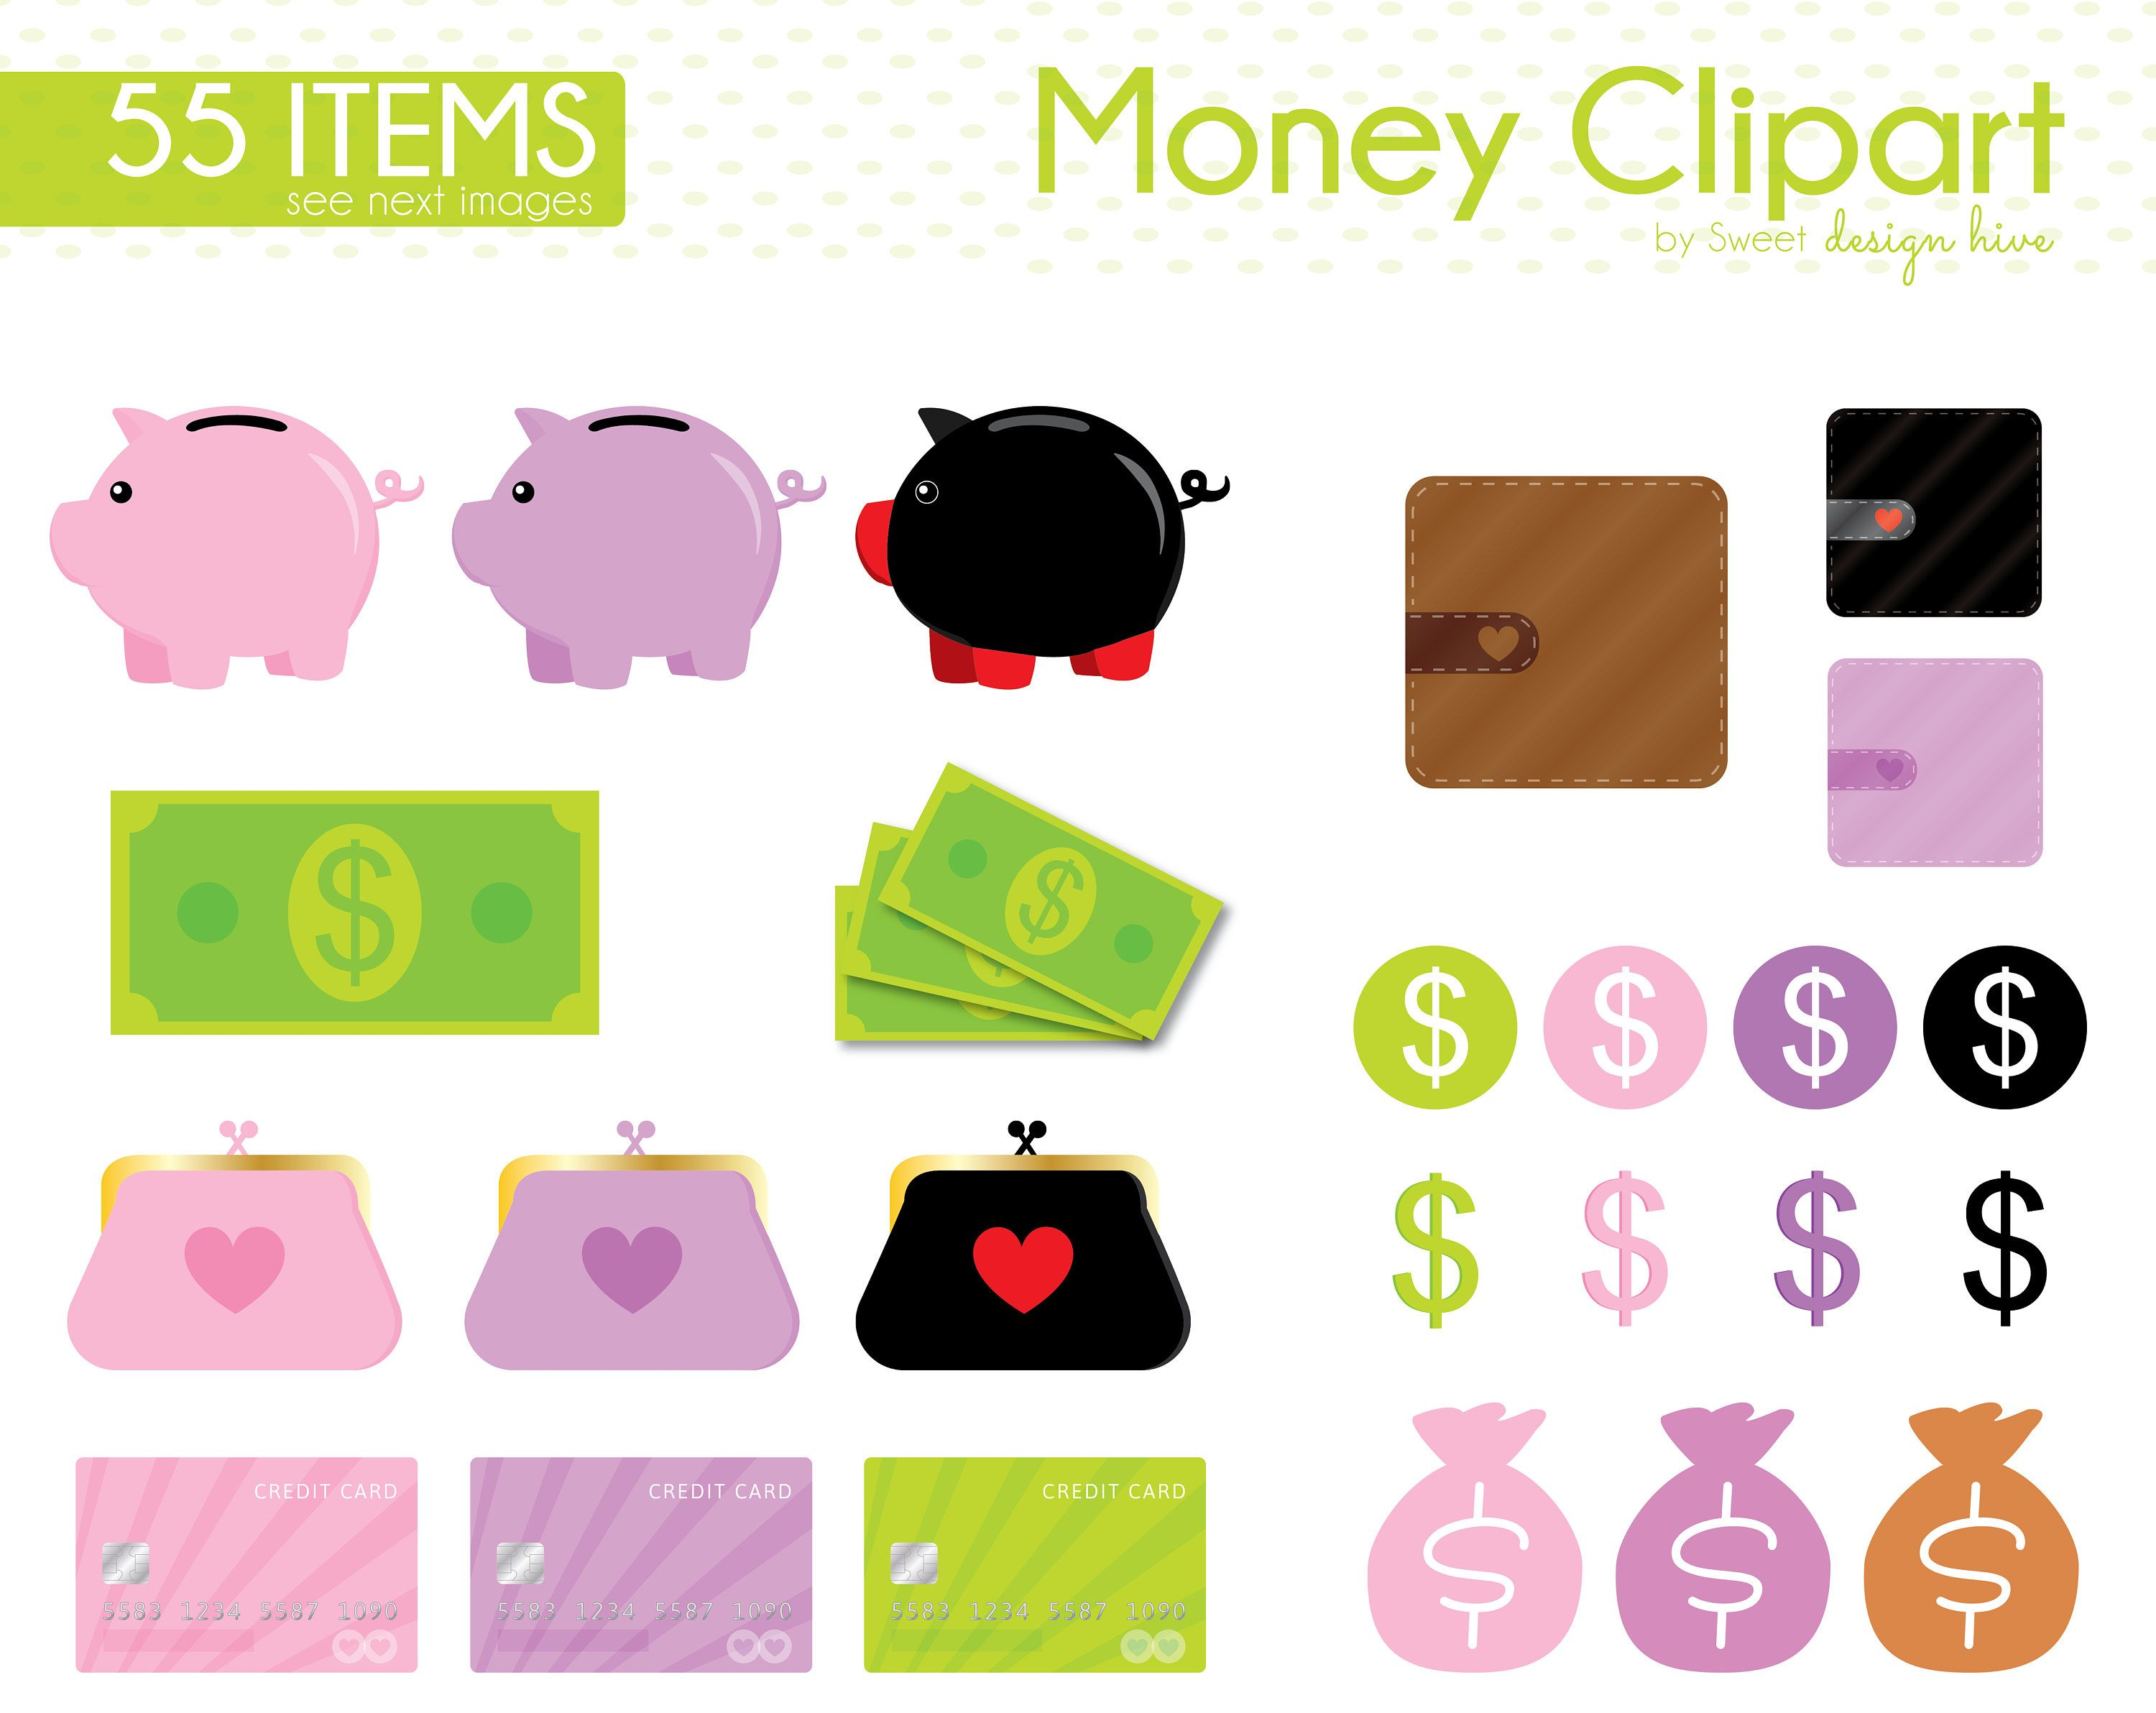 Money Clipart Finance Cash Dollar Bill Saving Money Save up